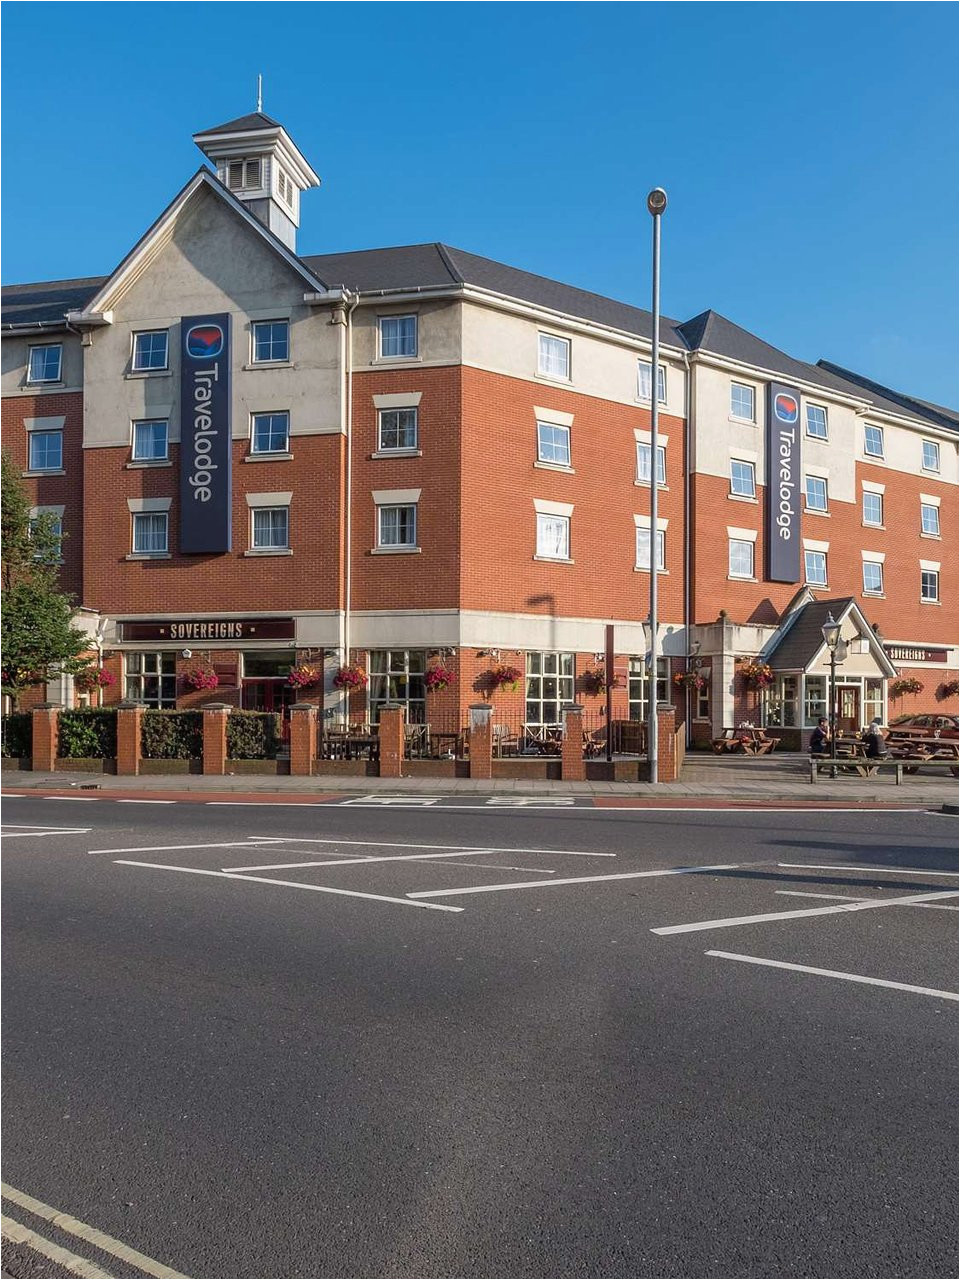 travelodge portsmouth updated 2019 prices hotel reviews england